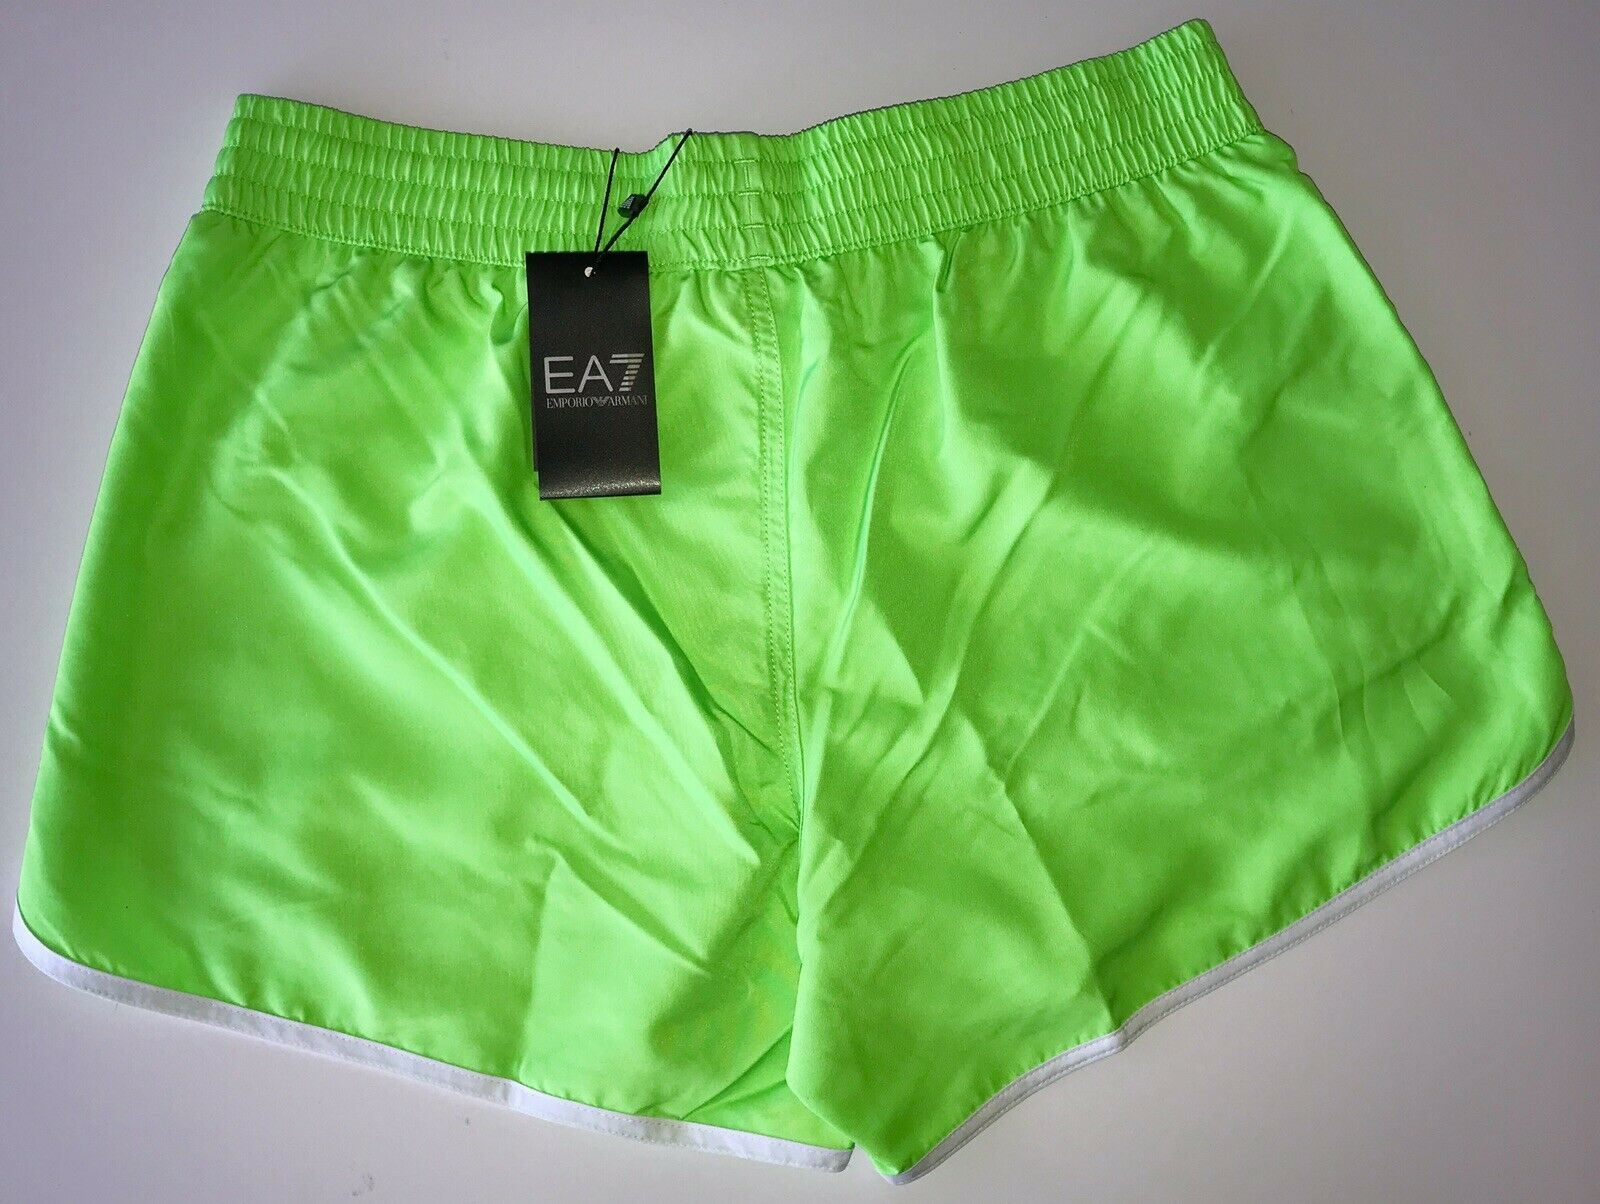 NWT $125 Emporio Armani EA7 Men's Beachwear Sea World Logo Shorts Boxer 50 Eu